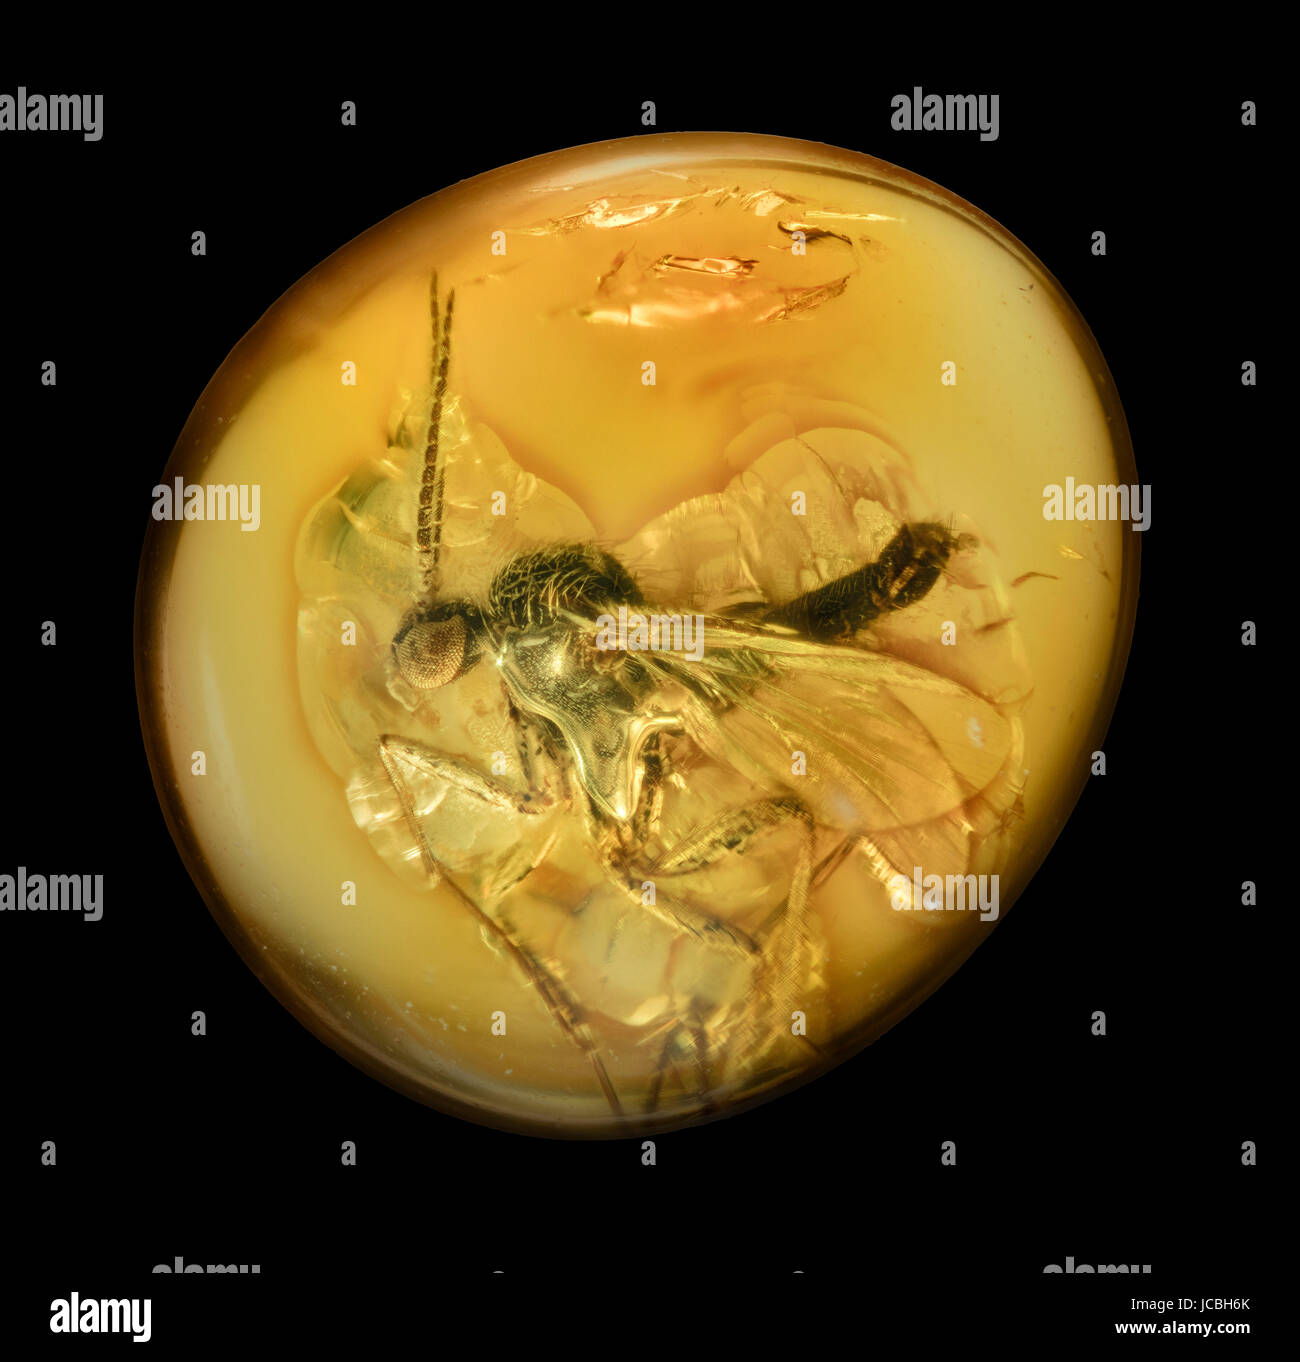 Fossilised fly in amber resin, hard, translucent originating from extinct coniferous trees of the Tertiary period - Stock Image